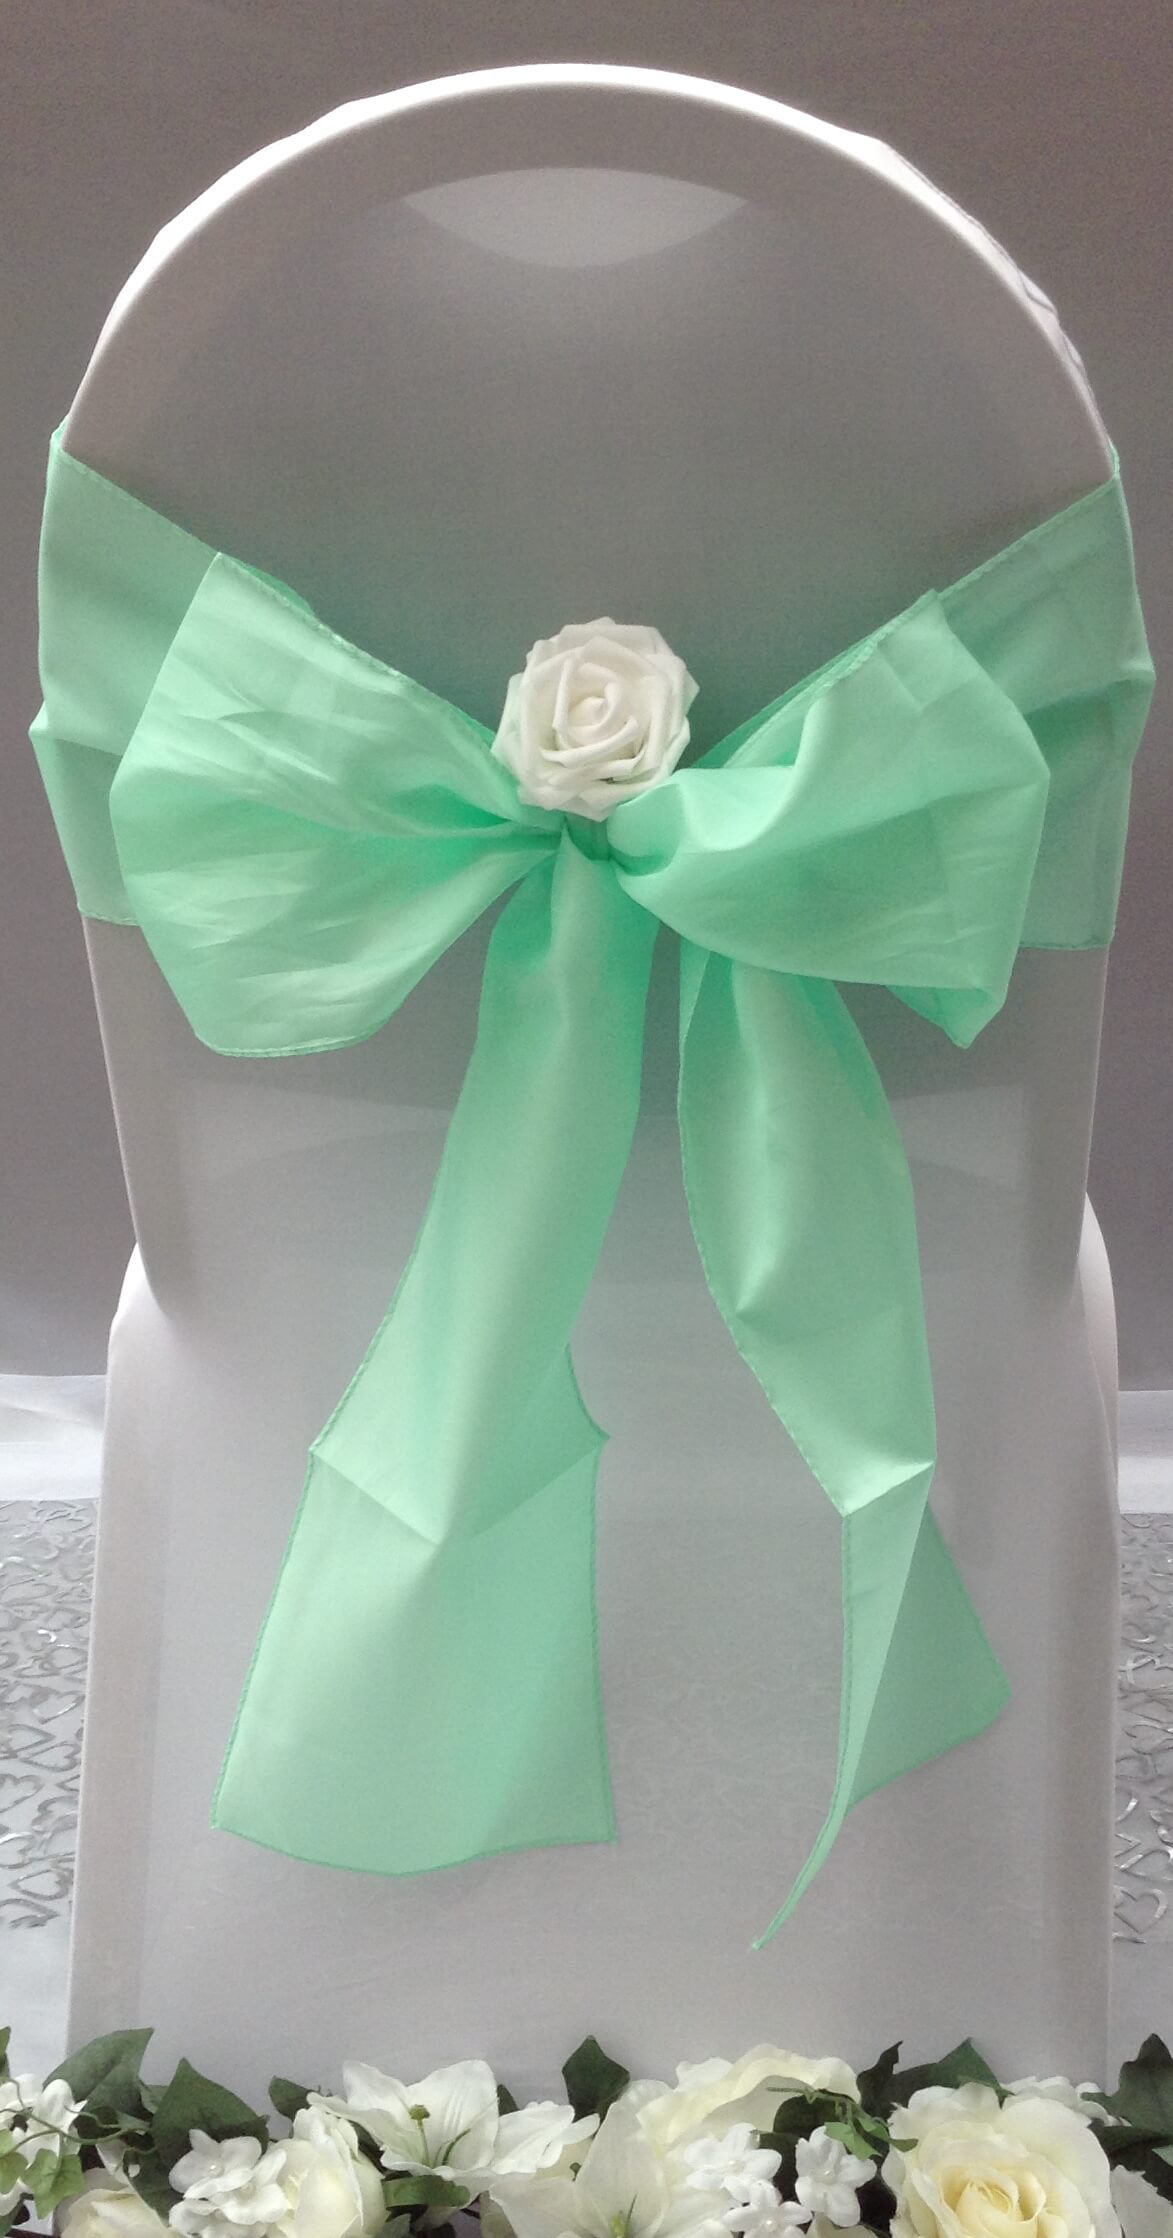 Pastel green sash with white flower